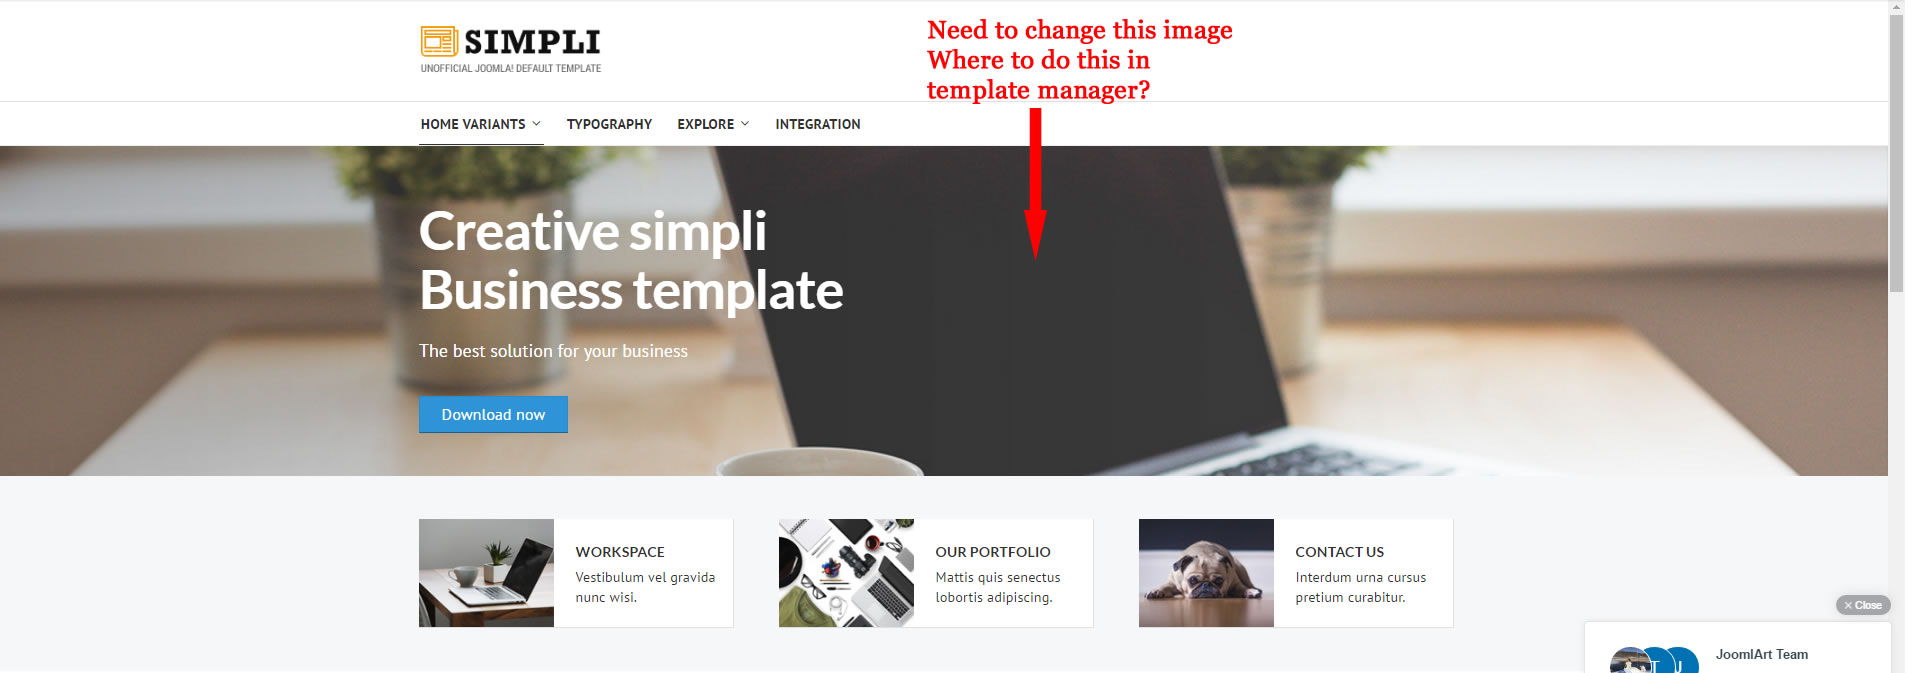 How to change the background image - JoomlArt